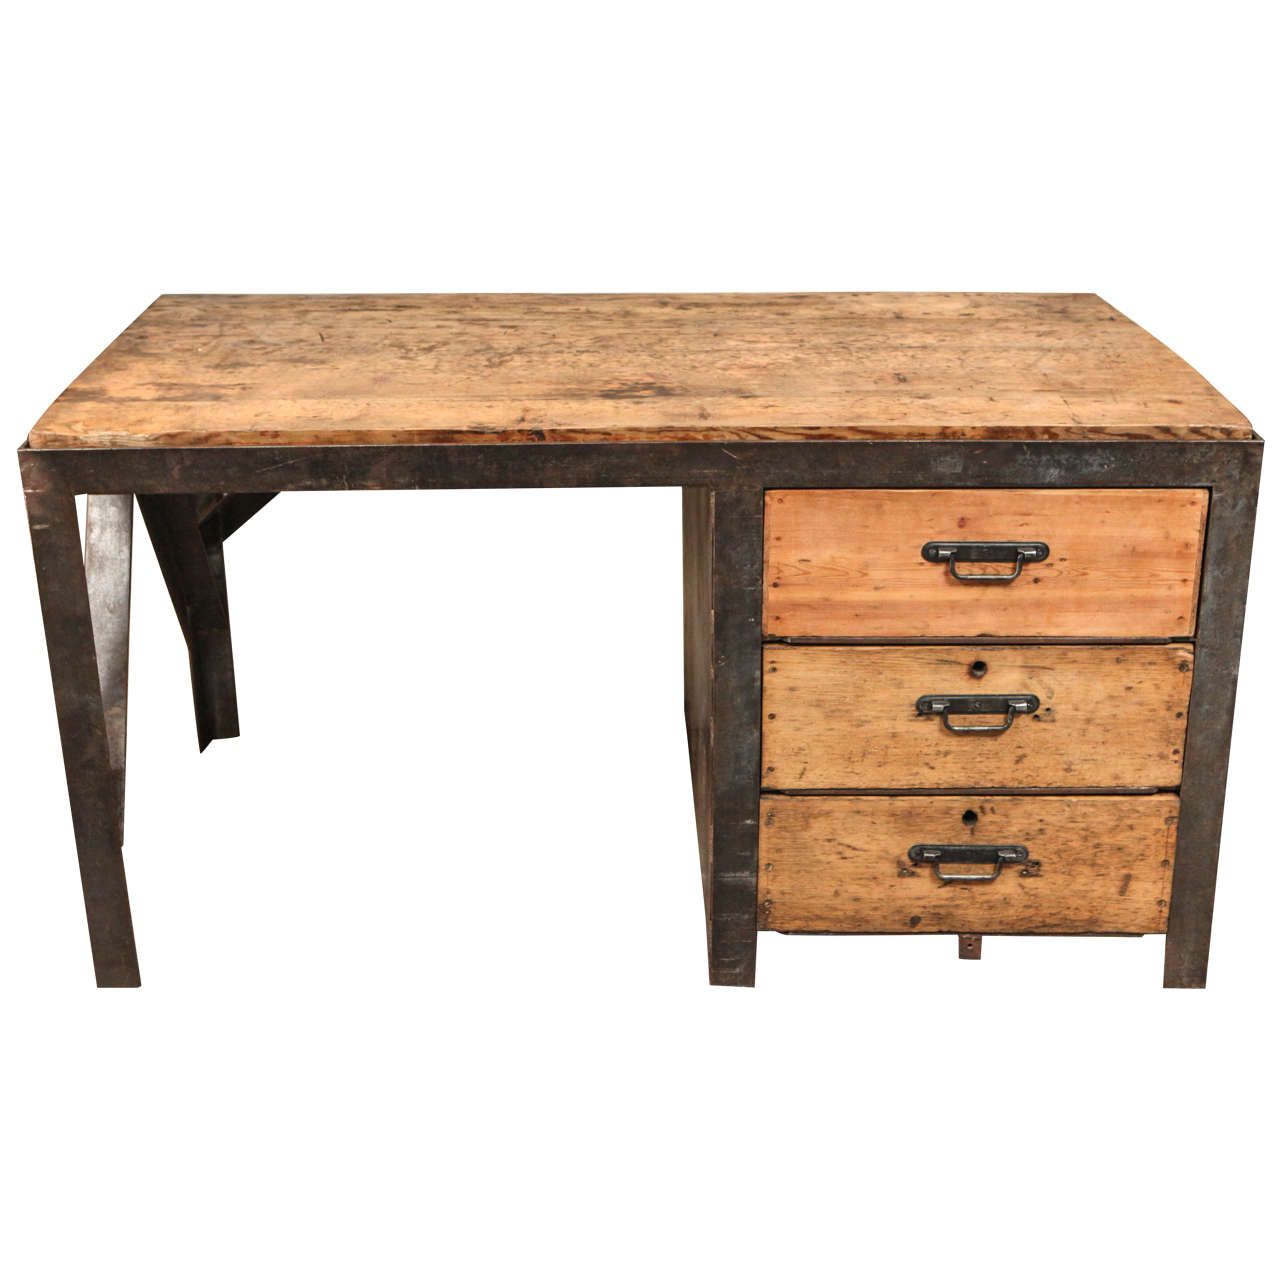 th century desk in metal with wood top and drawers at stdibs - th century desk in metal with wood top and drawers